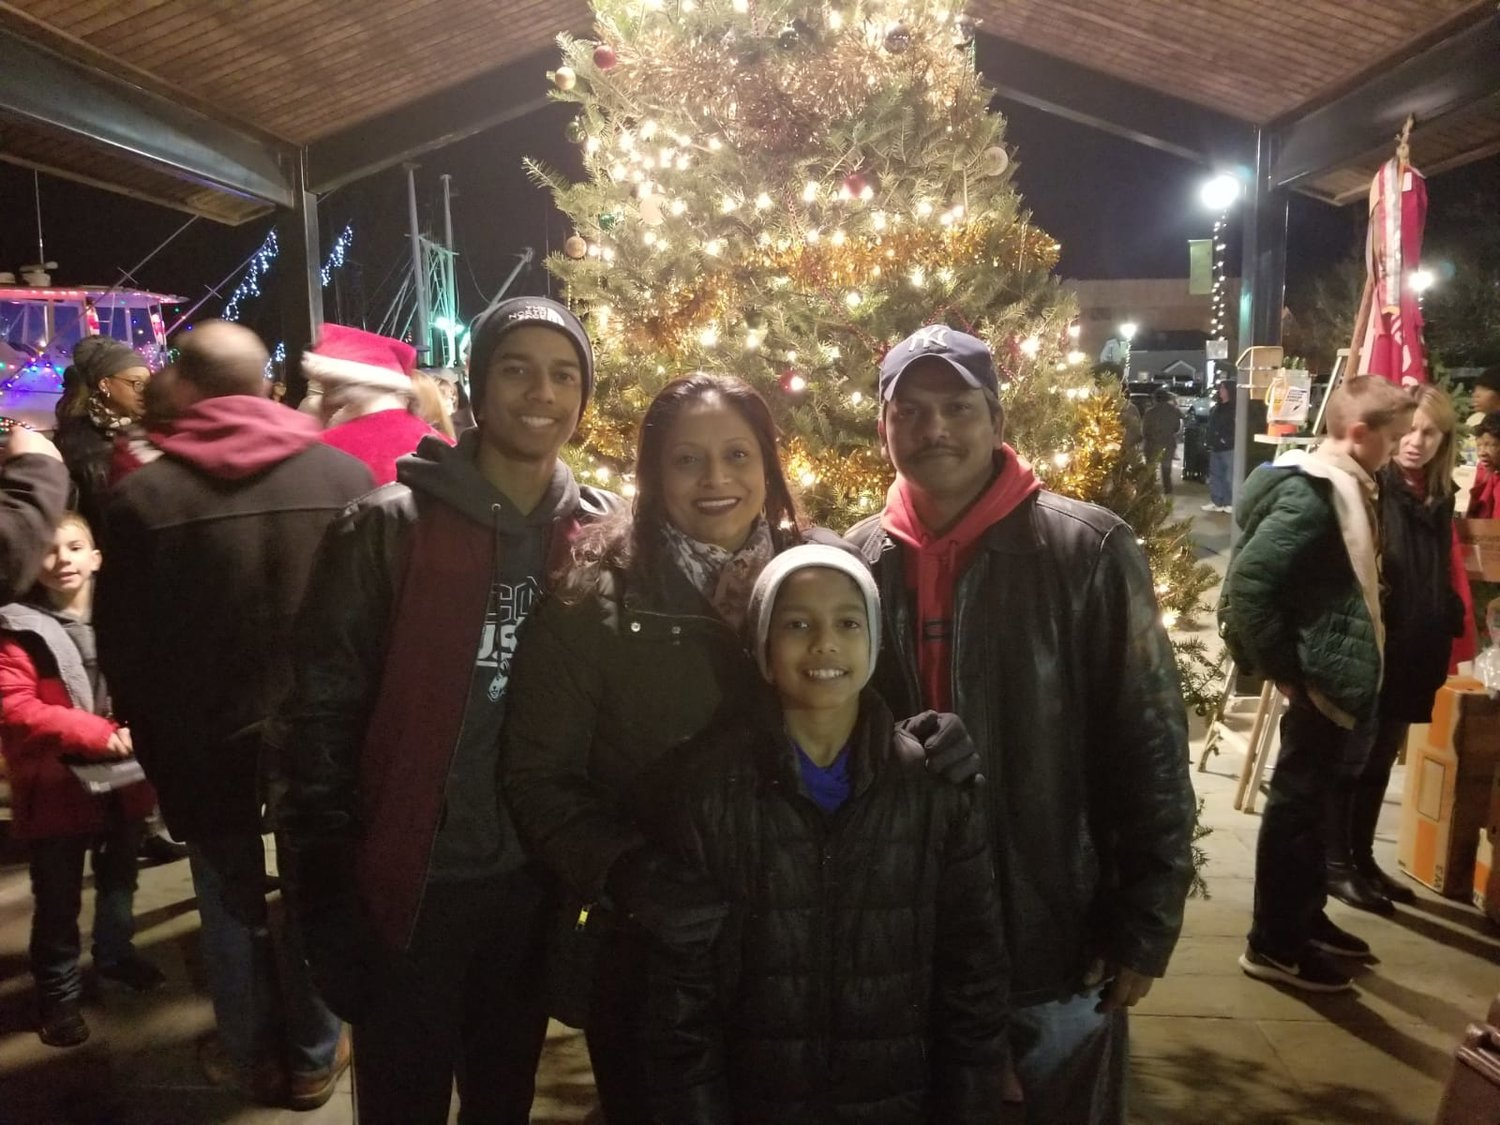 The Budhu family, Justin, left, Joanna, Jayden and John, right during the holiday seasons at the Esplanade on Woodcleft Avenue in Freeport.